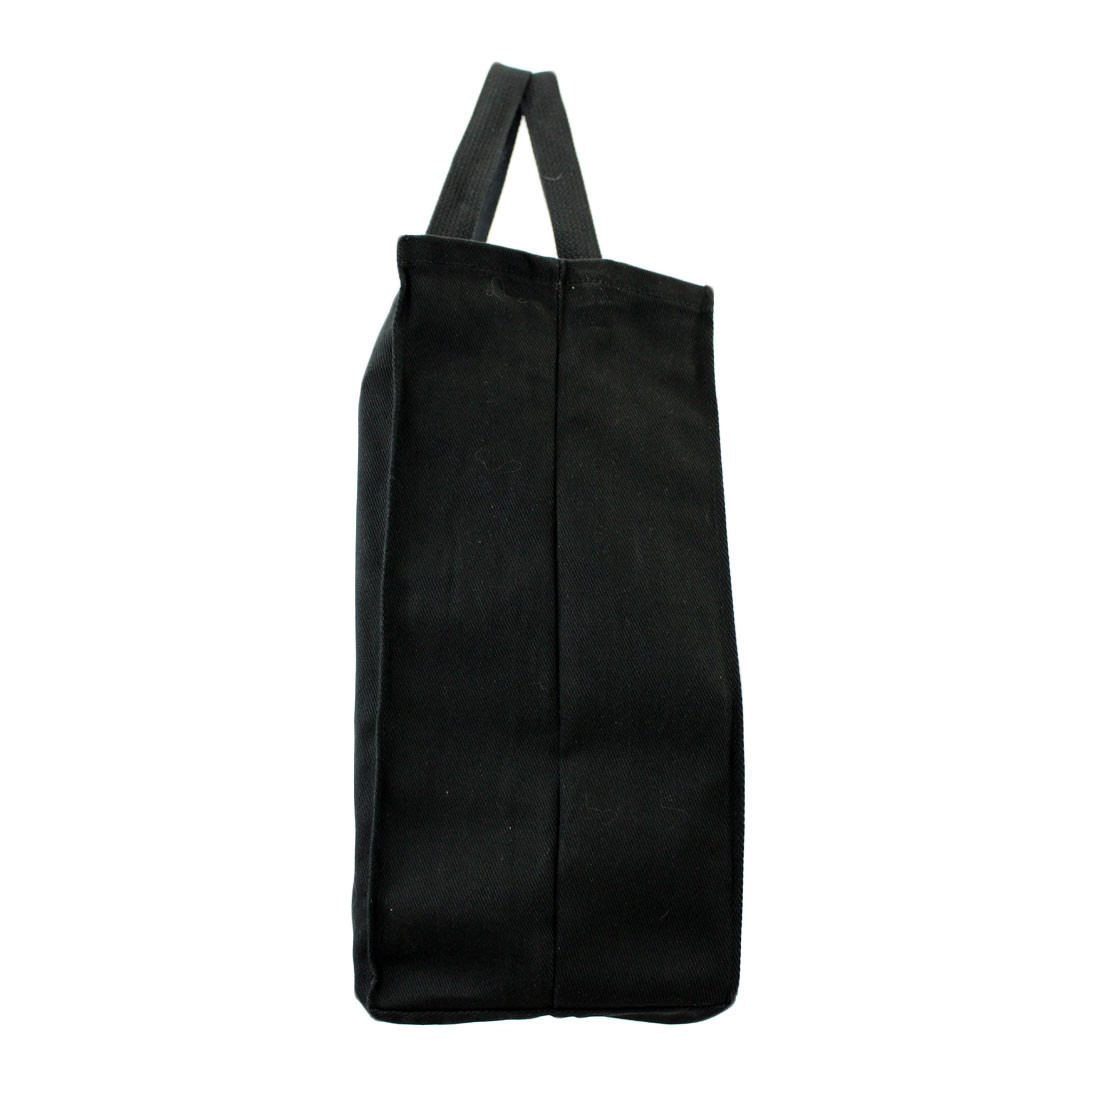 Side view of grocery tote bag.